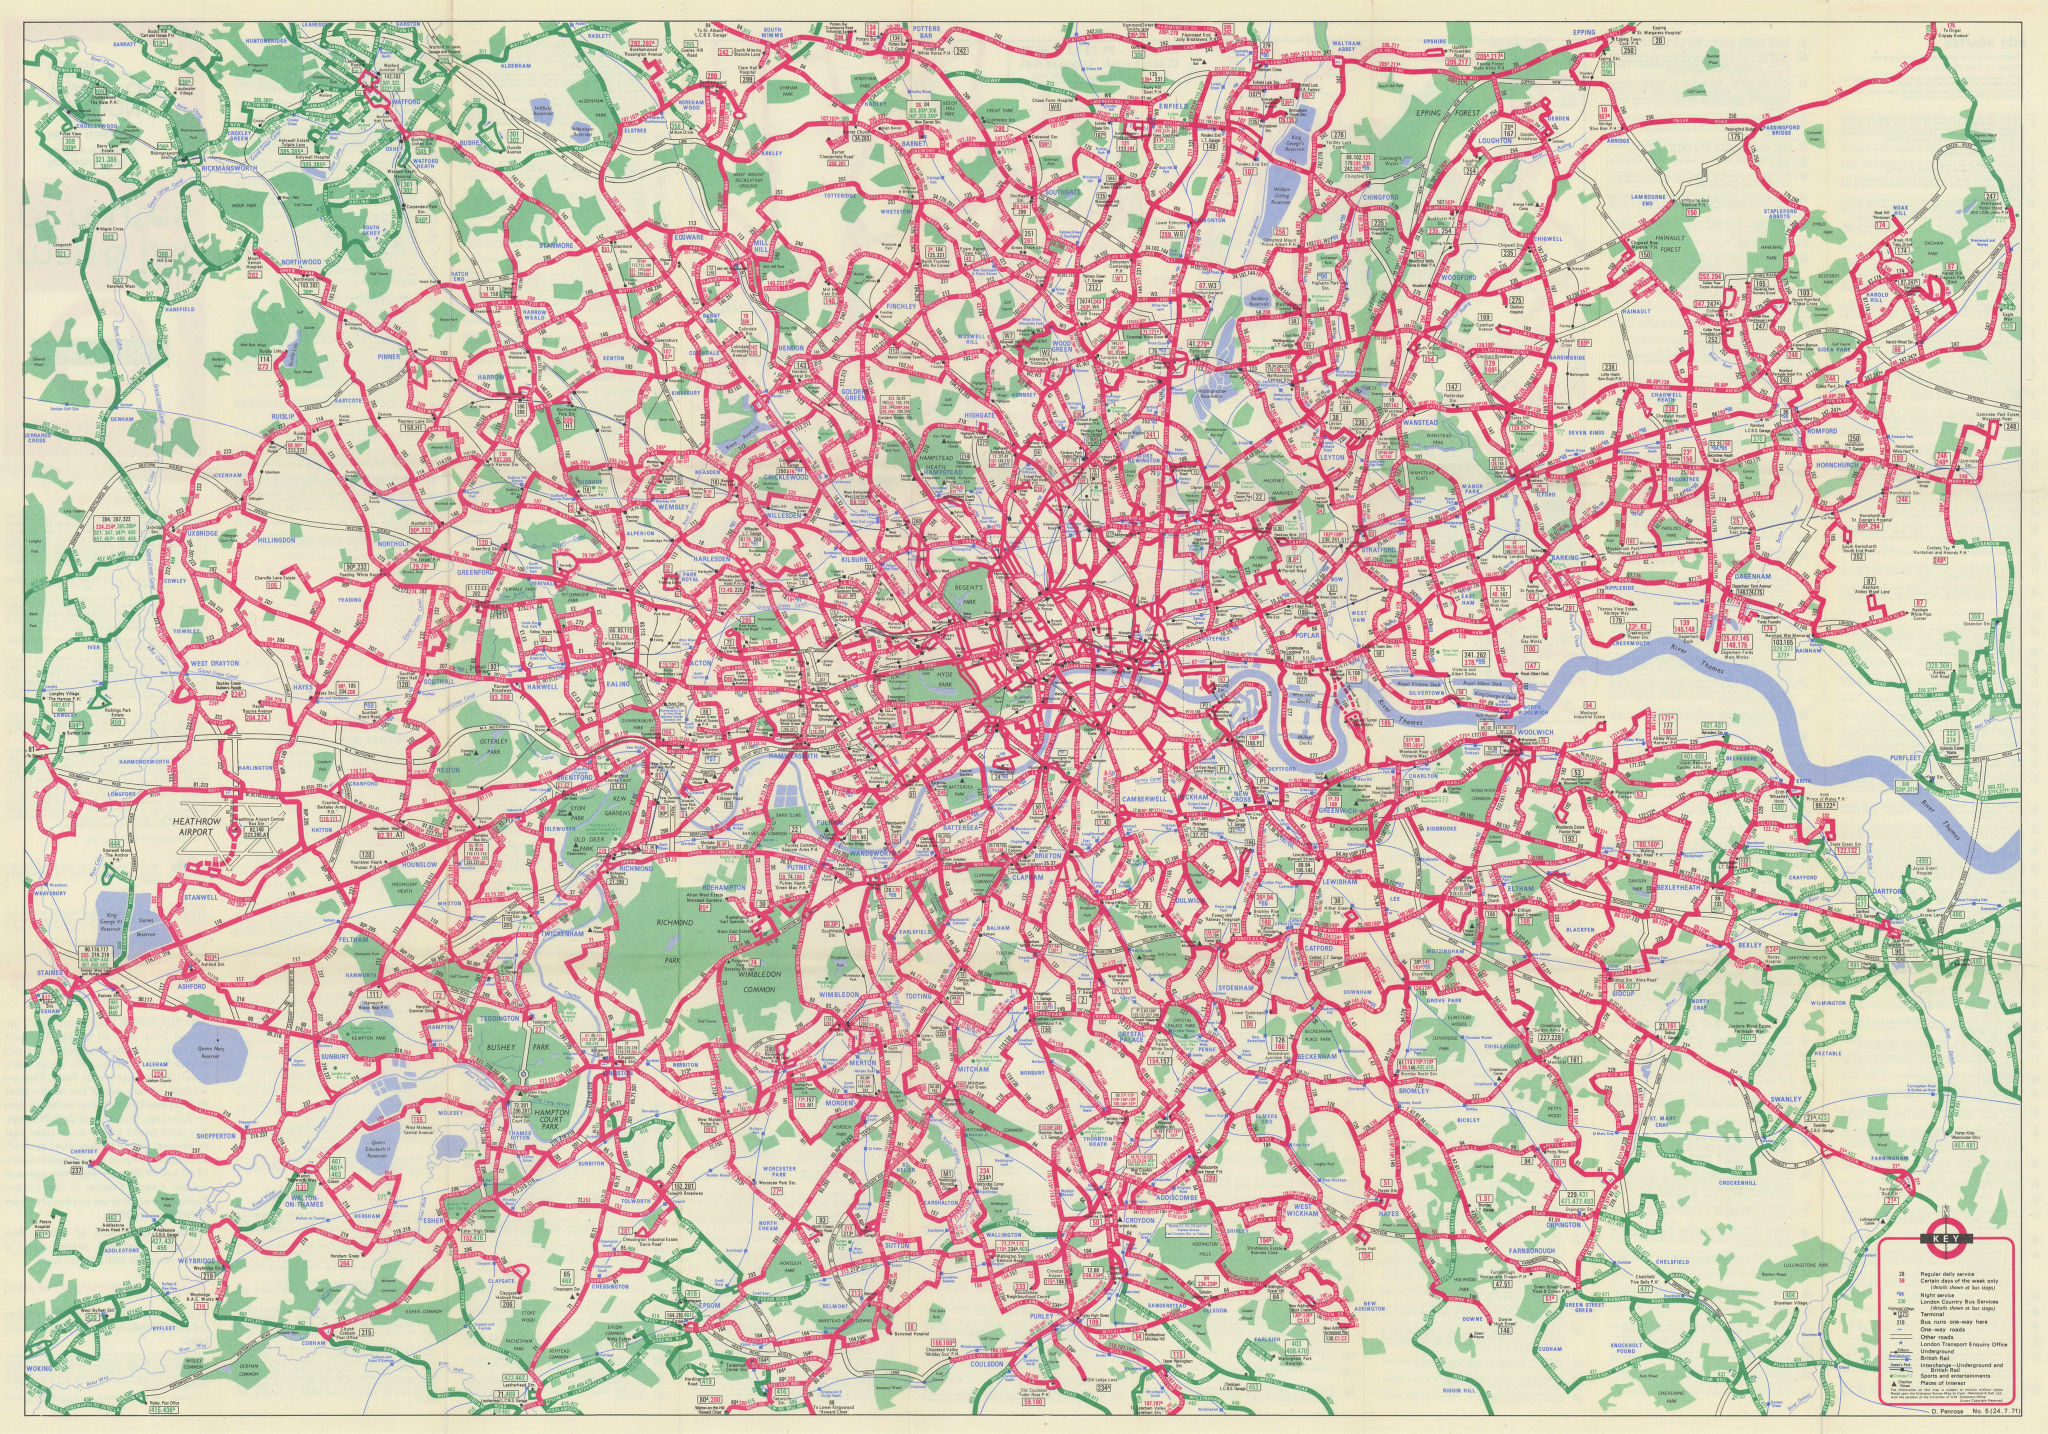 London Transport - London Buses map & list of routes. PENROSE #2 1971 old